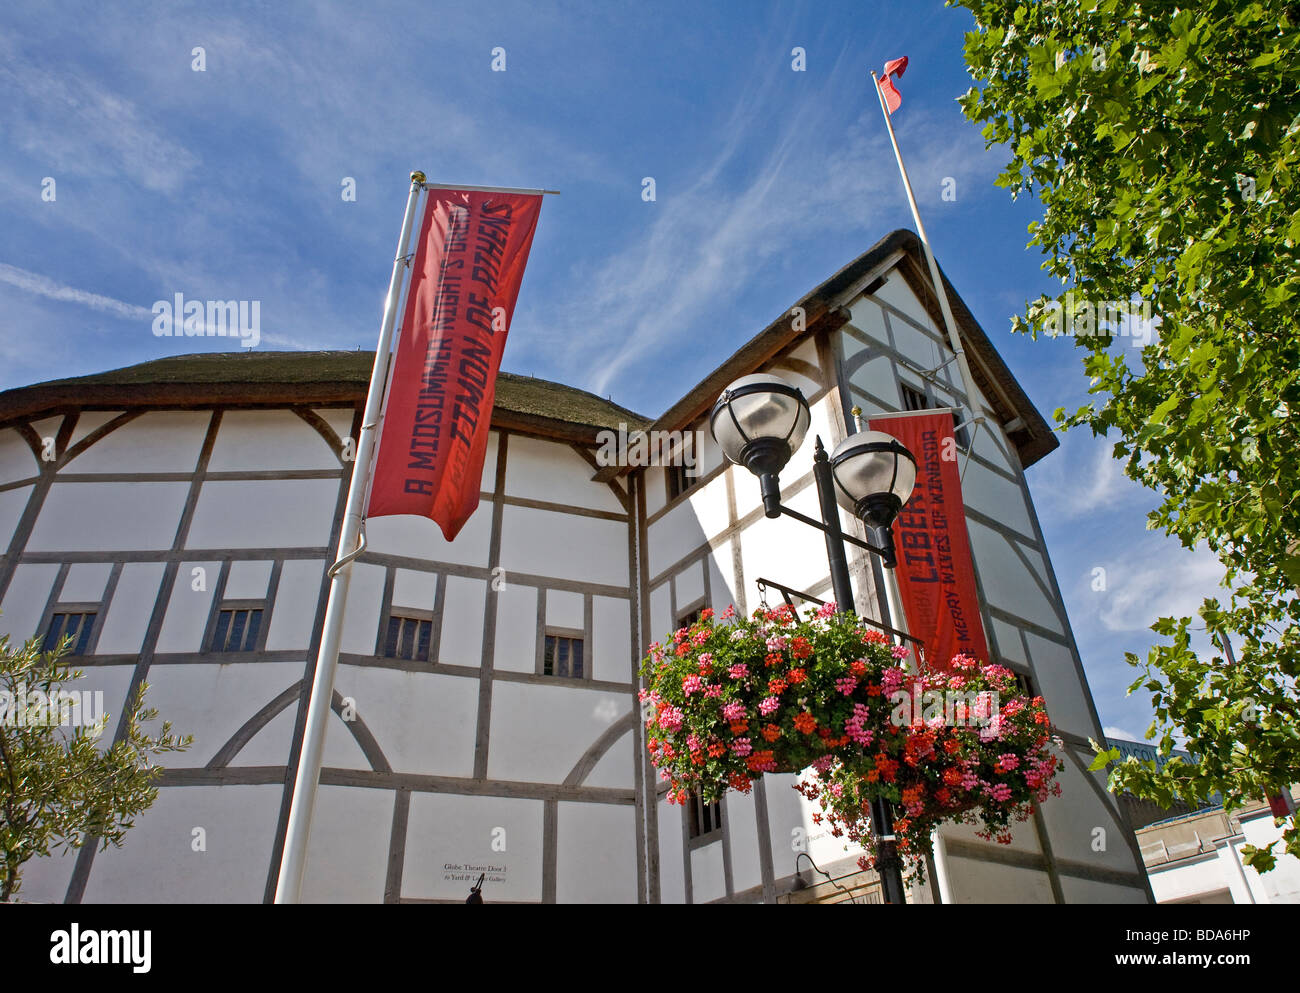 London Bankside The Globe Theatre July 2OO8 - Stock Image